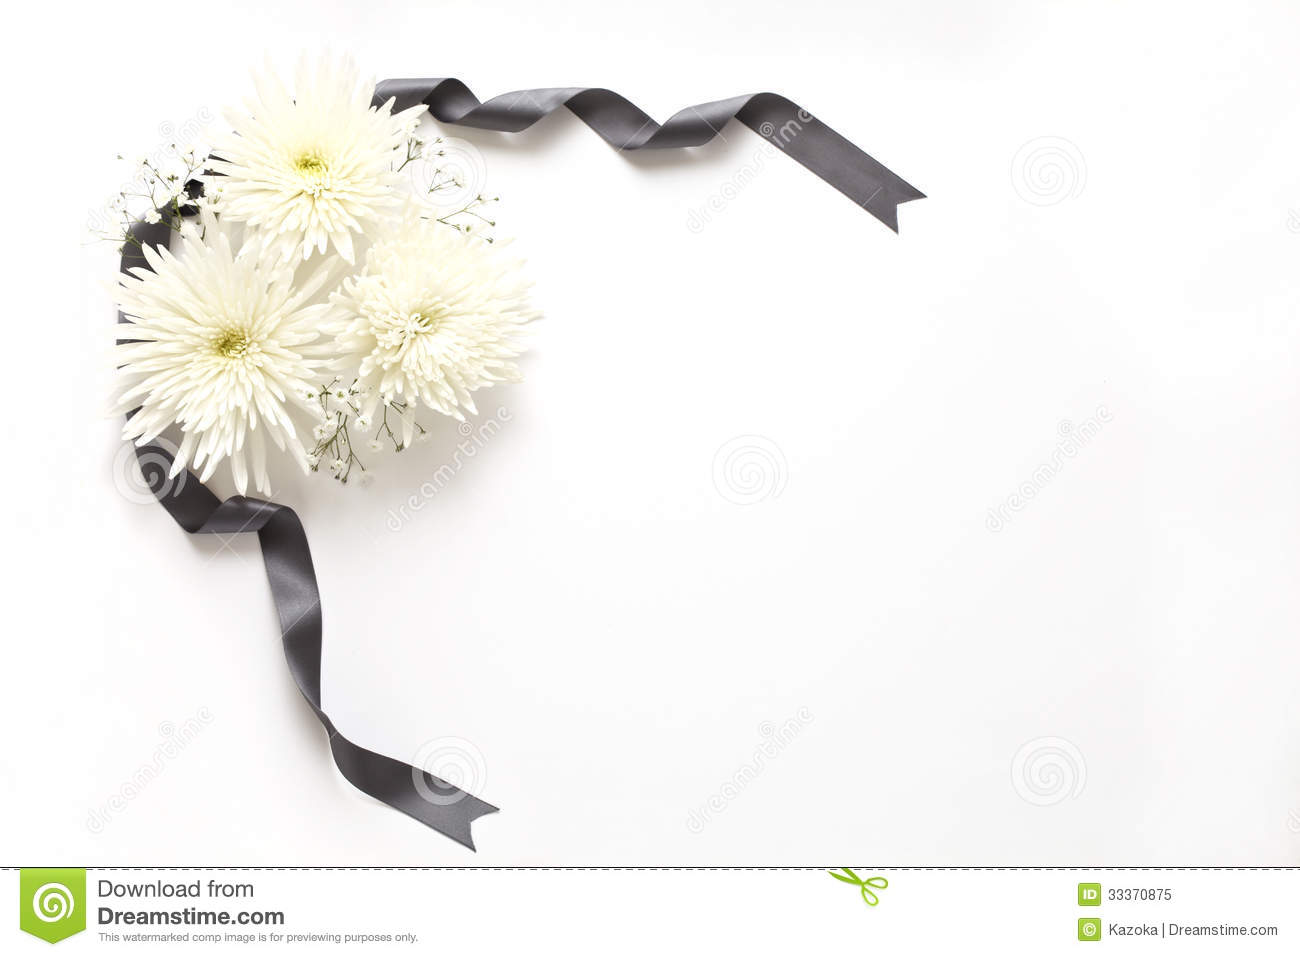 Funeral Flowers Royalty Free Stock Photo - Image: 33370875